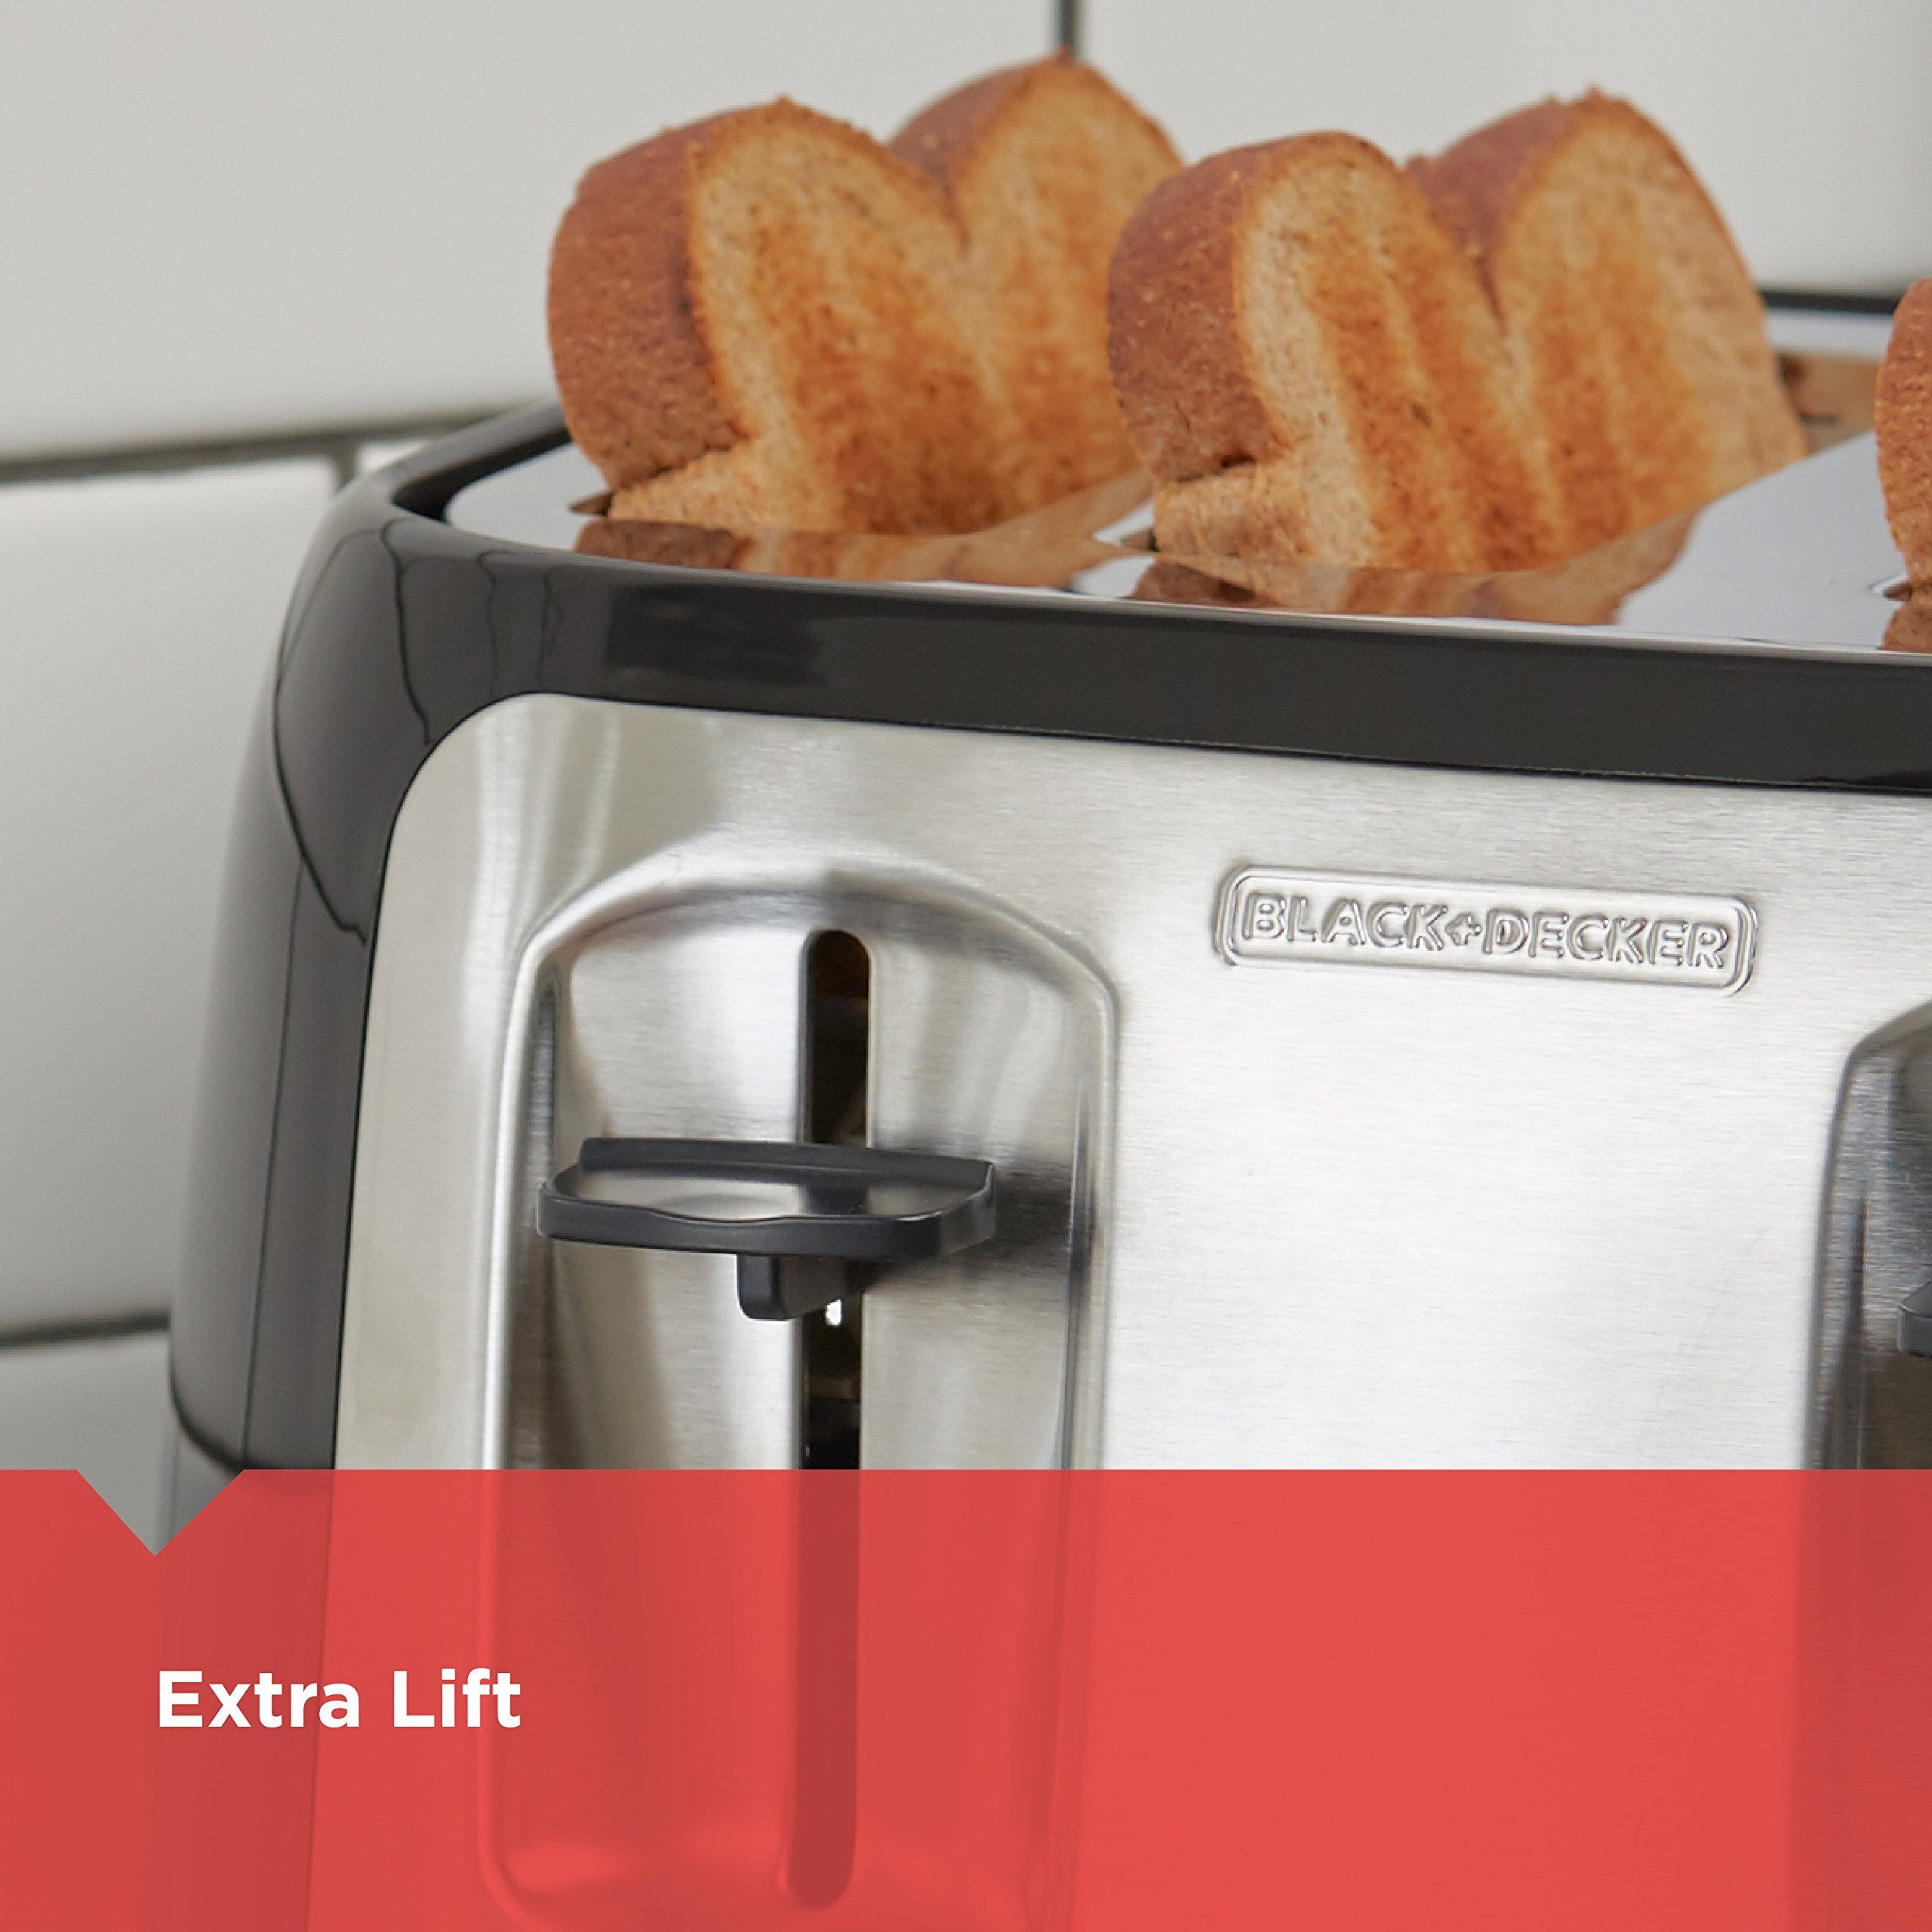 BLACK+DECKER 4-Slice Toaster, Classic Oval, Black with Stainless Steel Accents, TR1478BD by BLACK+DECKER (Image #5)